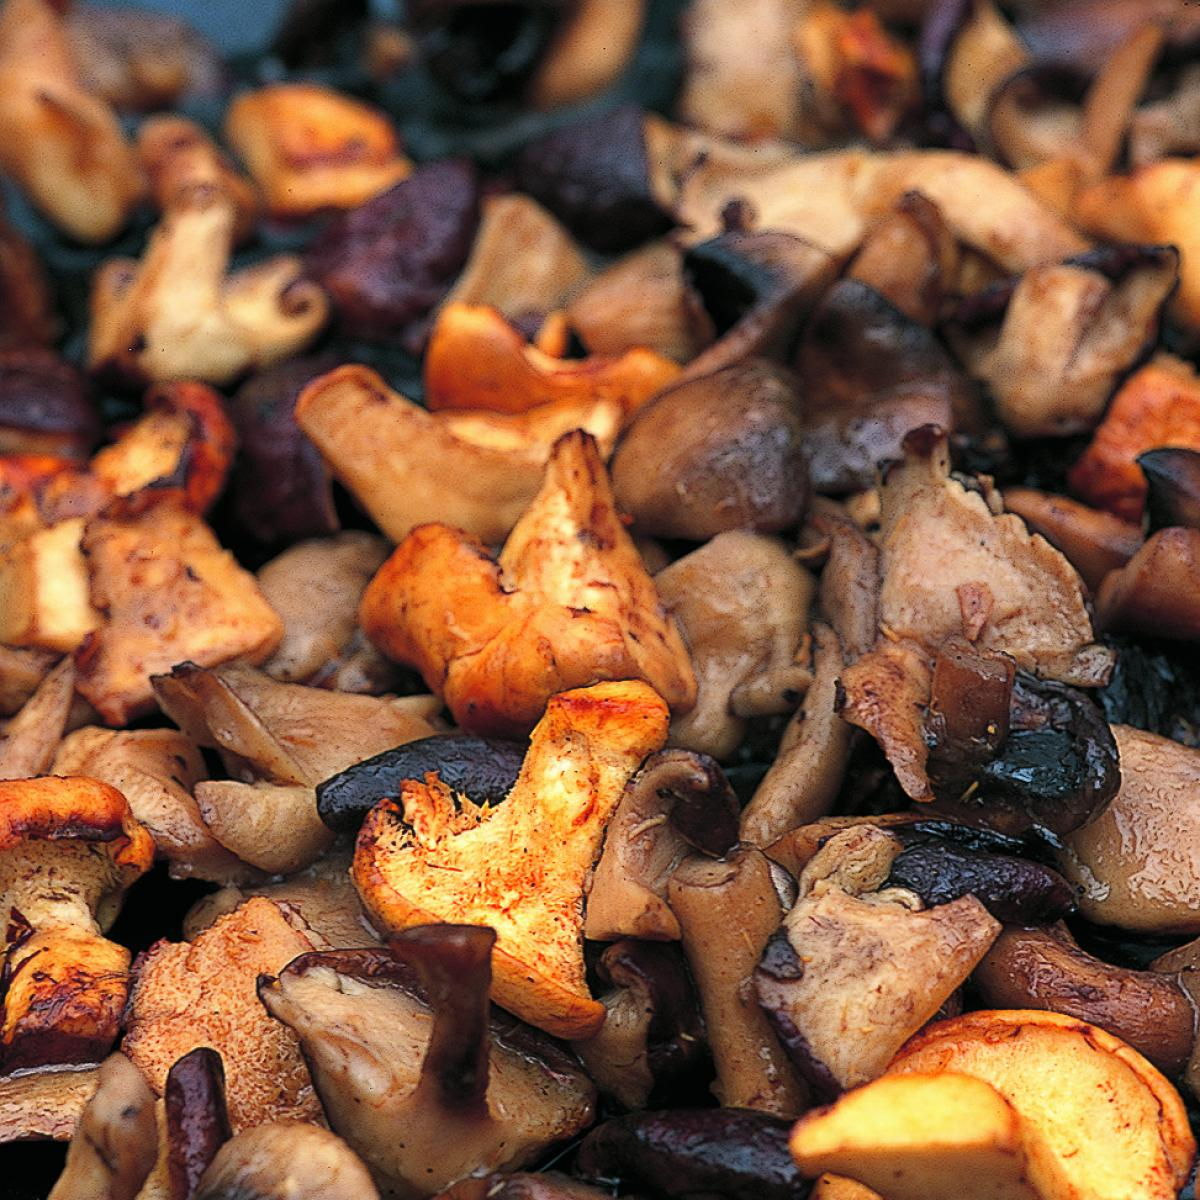 A picture of Delia's Sauteed Mushrooms recipe